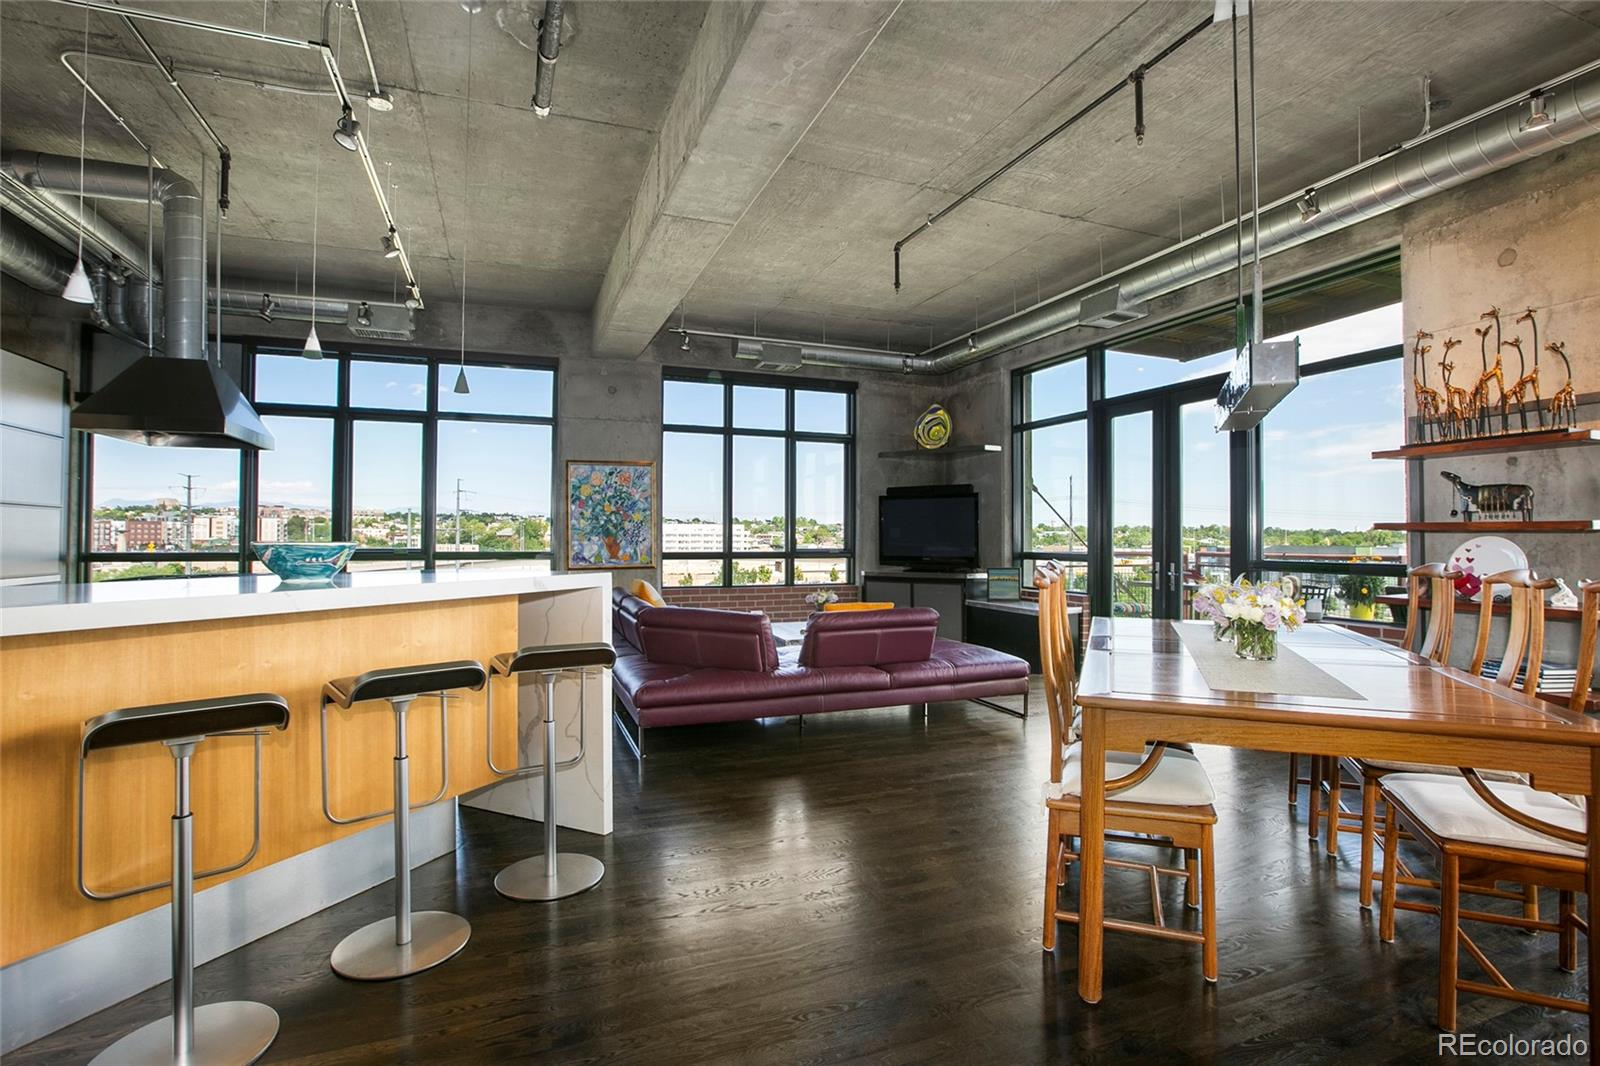 A rare opportunity in Denver's historical Flour Mill Lofts developed by Denver's Dana Crawford (of Crawford Hotel@Union Station). The end unit is bright w/large windows on 3 sides that include views of COLO mountains, Platte River, Cuernavaca Park, & Denver's skyline. It lives extremely lg with its open floor plan. Crawford's vision is seen throughout with exposed brick, walls and ceilings. Soaring 12ft+ ceilings. The kitchen boasts SUBZERO frig, 2 DACOR ovens, European electronic door cabinets/coffee bar & glassware storage. 180+ bottle wine frig, Master closet is floor-to-ceiling built in hanging & storage. Master bath has 2 ROBERN lighted interior/exterior cabinets, NEOREST electric toilet, NAKORI soaking tub, walk-in shower, and NEOLITH marble wall panels, plus lighted art niches and motion floor lighting! NEST thermostats. Custom wall covering in entrance hall. Outdoor balcony is 192 sq ft. w/natural gas. FML is secured & provides ample visitor parking. Herb garden for residence and high speed internet. Pet friendly.